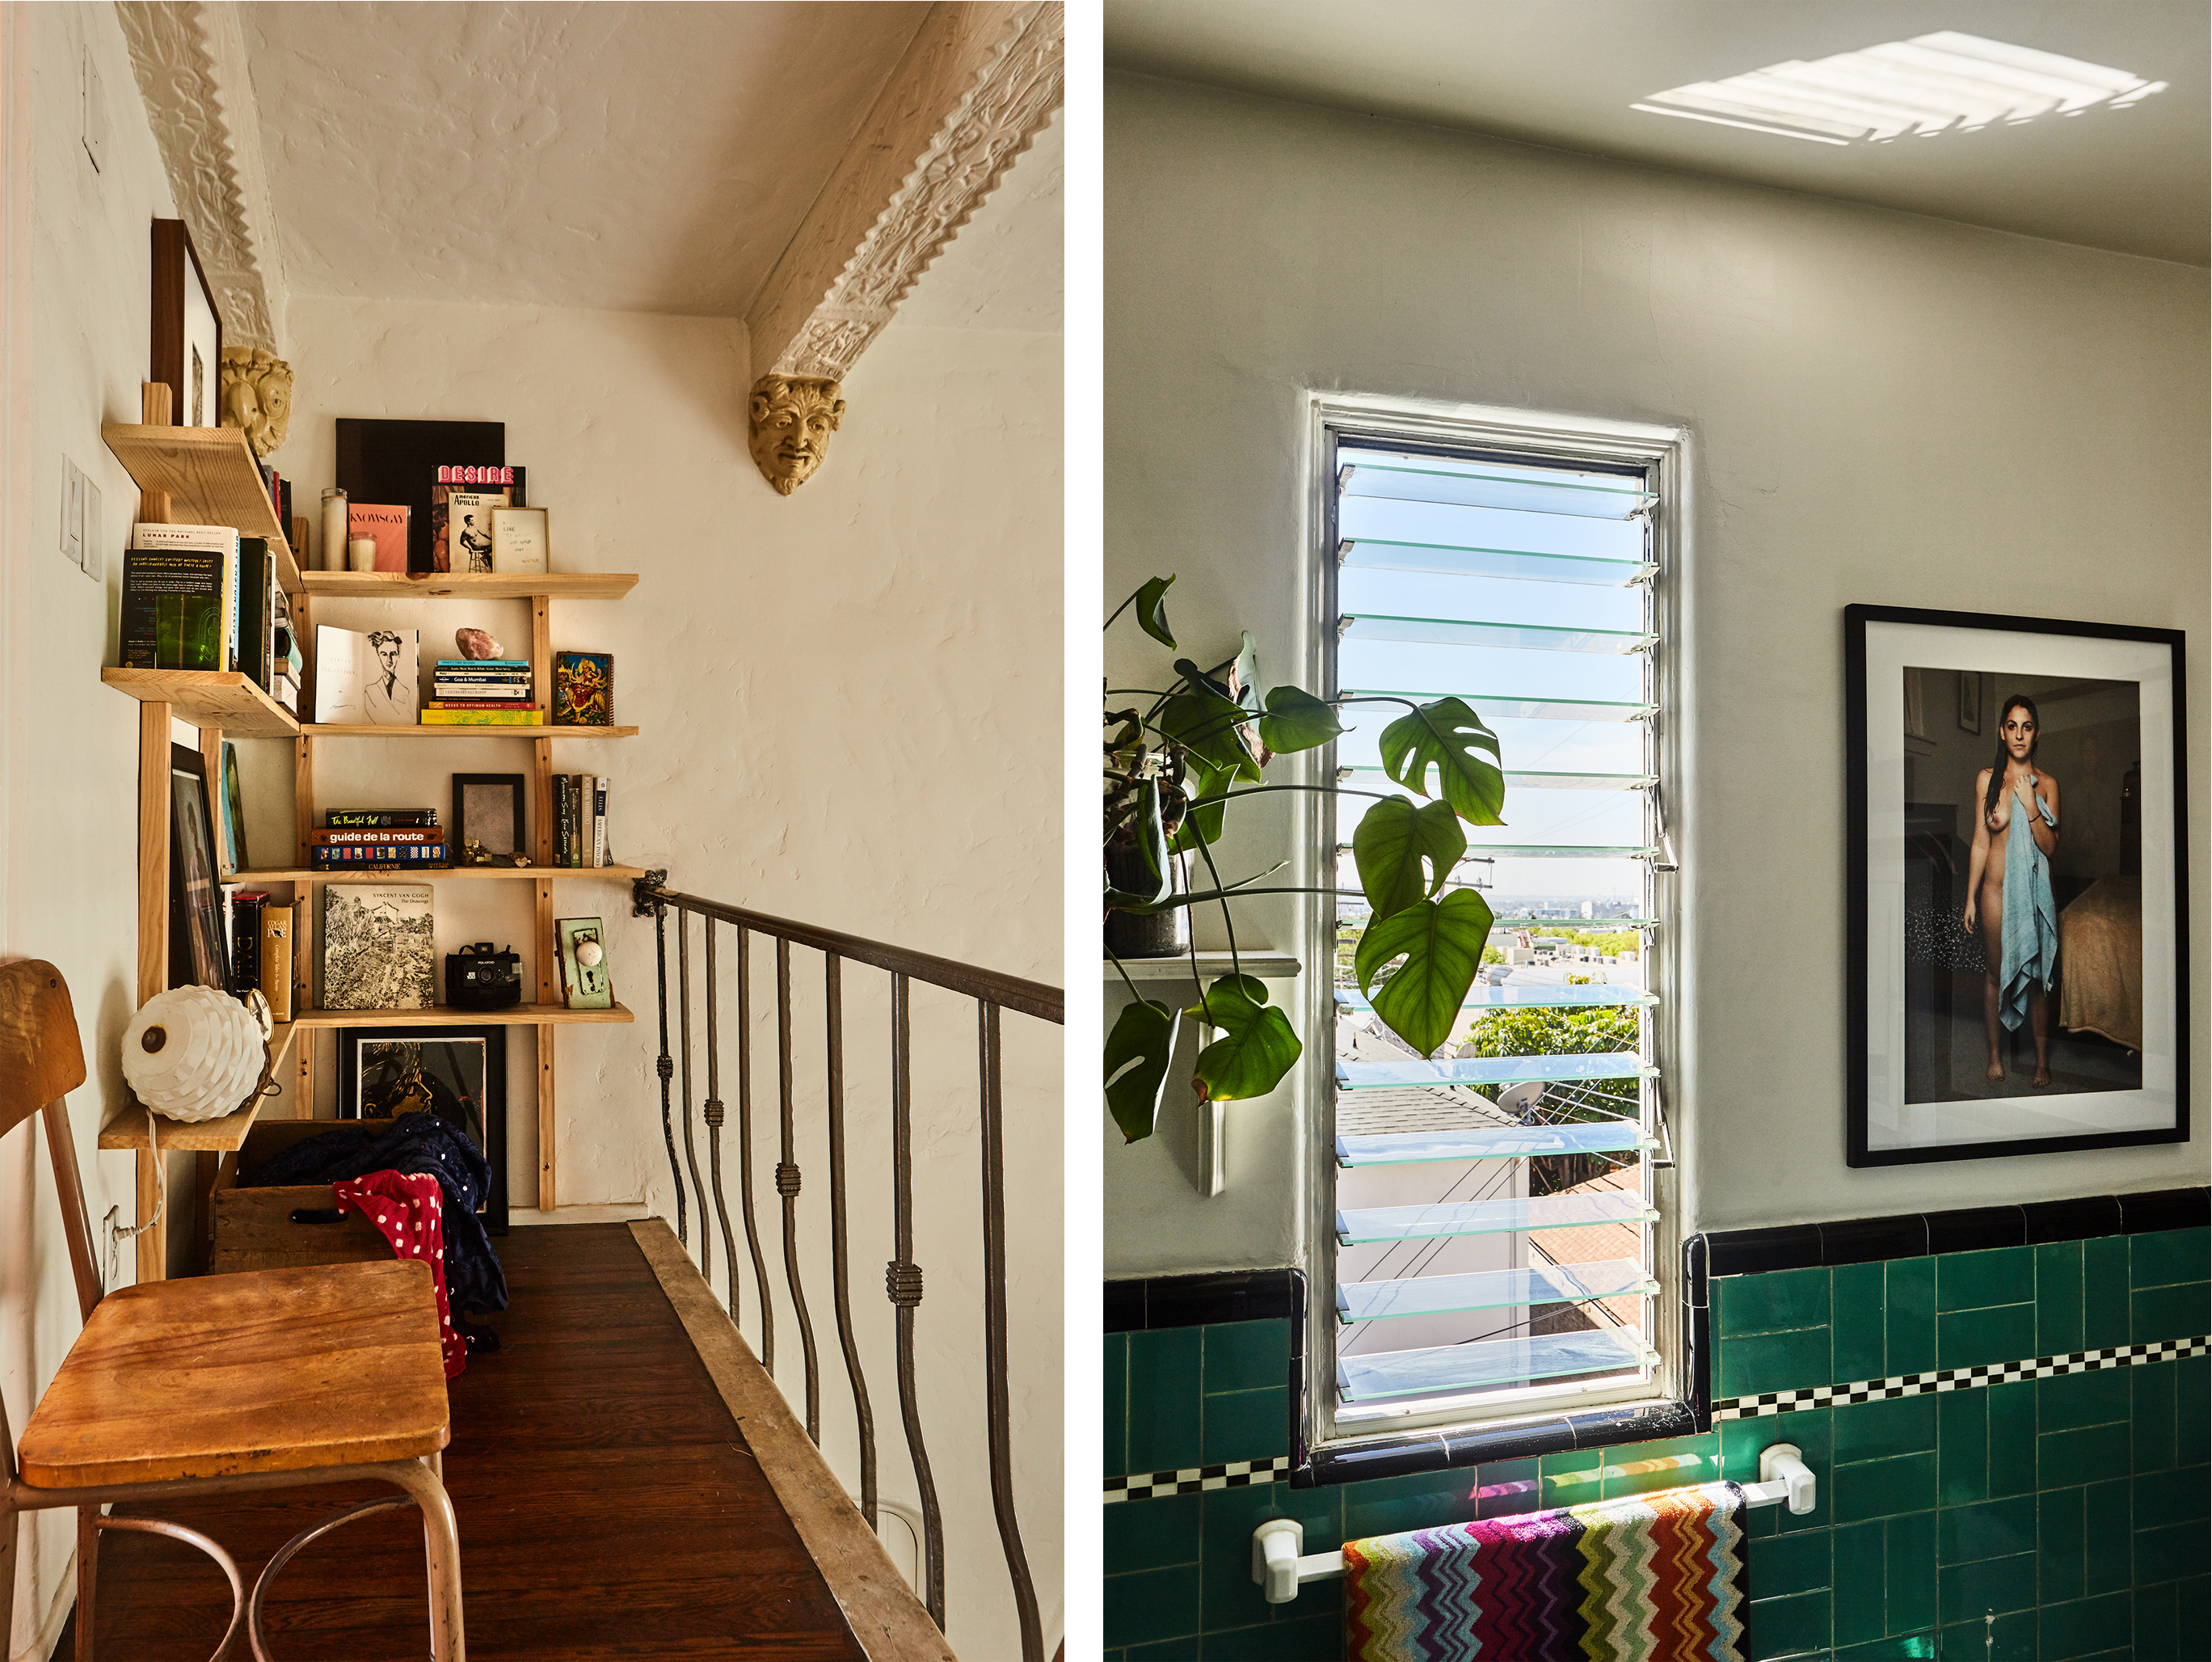 A built-in corner bookshelf makes a narrow landing functional. Green-and-black vintage tile decorates the bathroom.